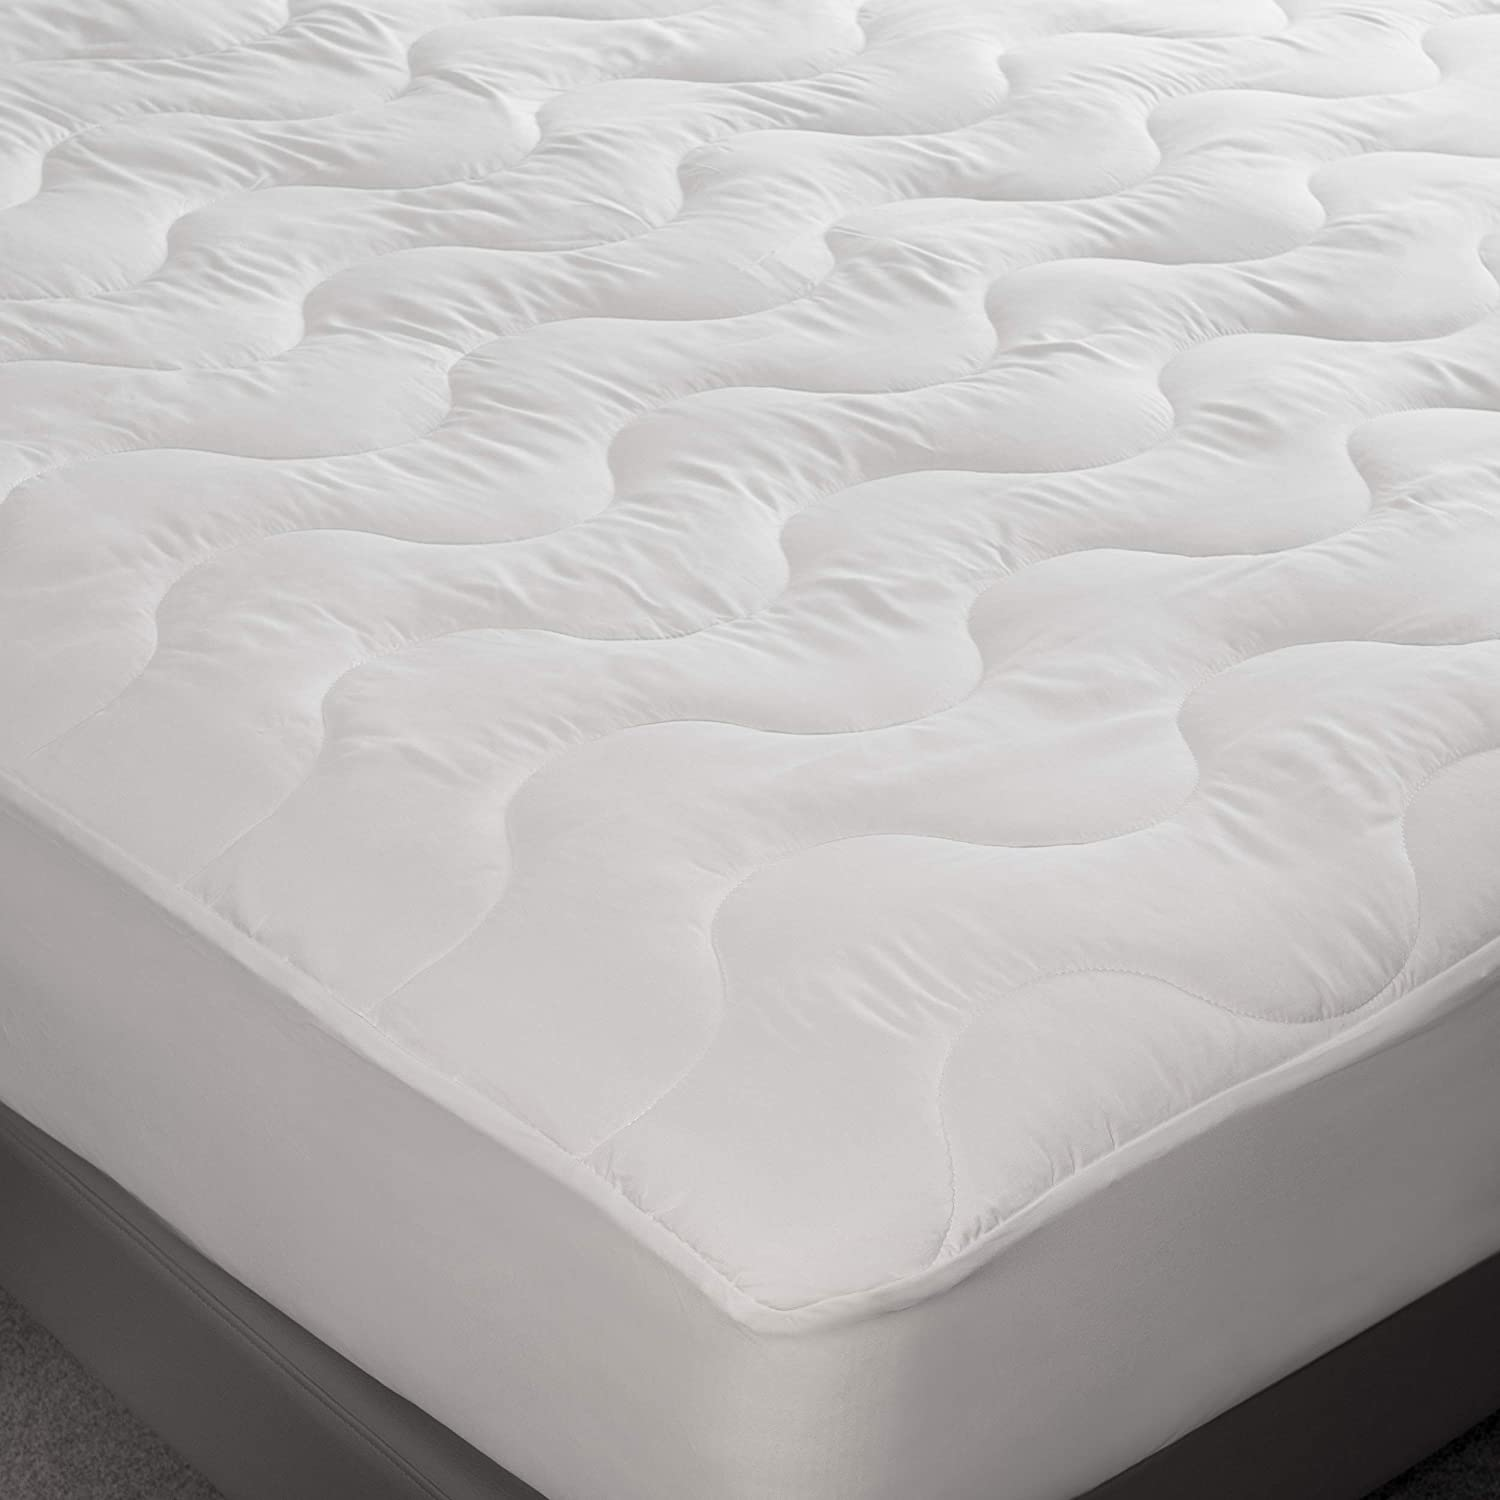 Amazon Com Feelathome Hypoallergenic Fitted Mattress Pad Topper